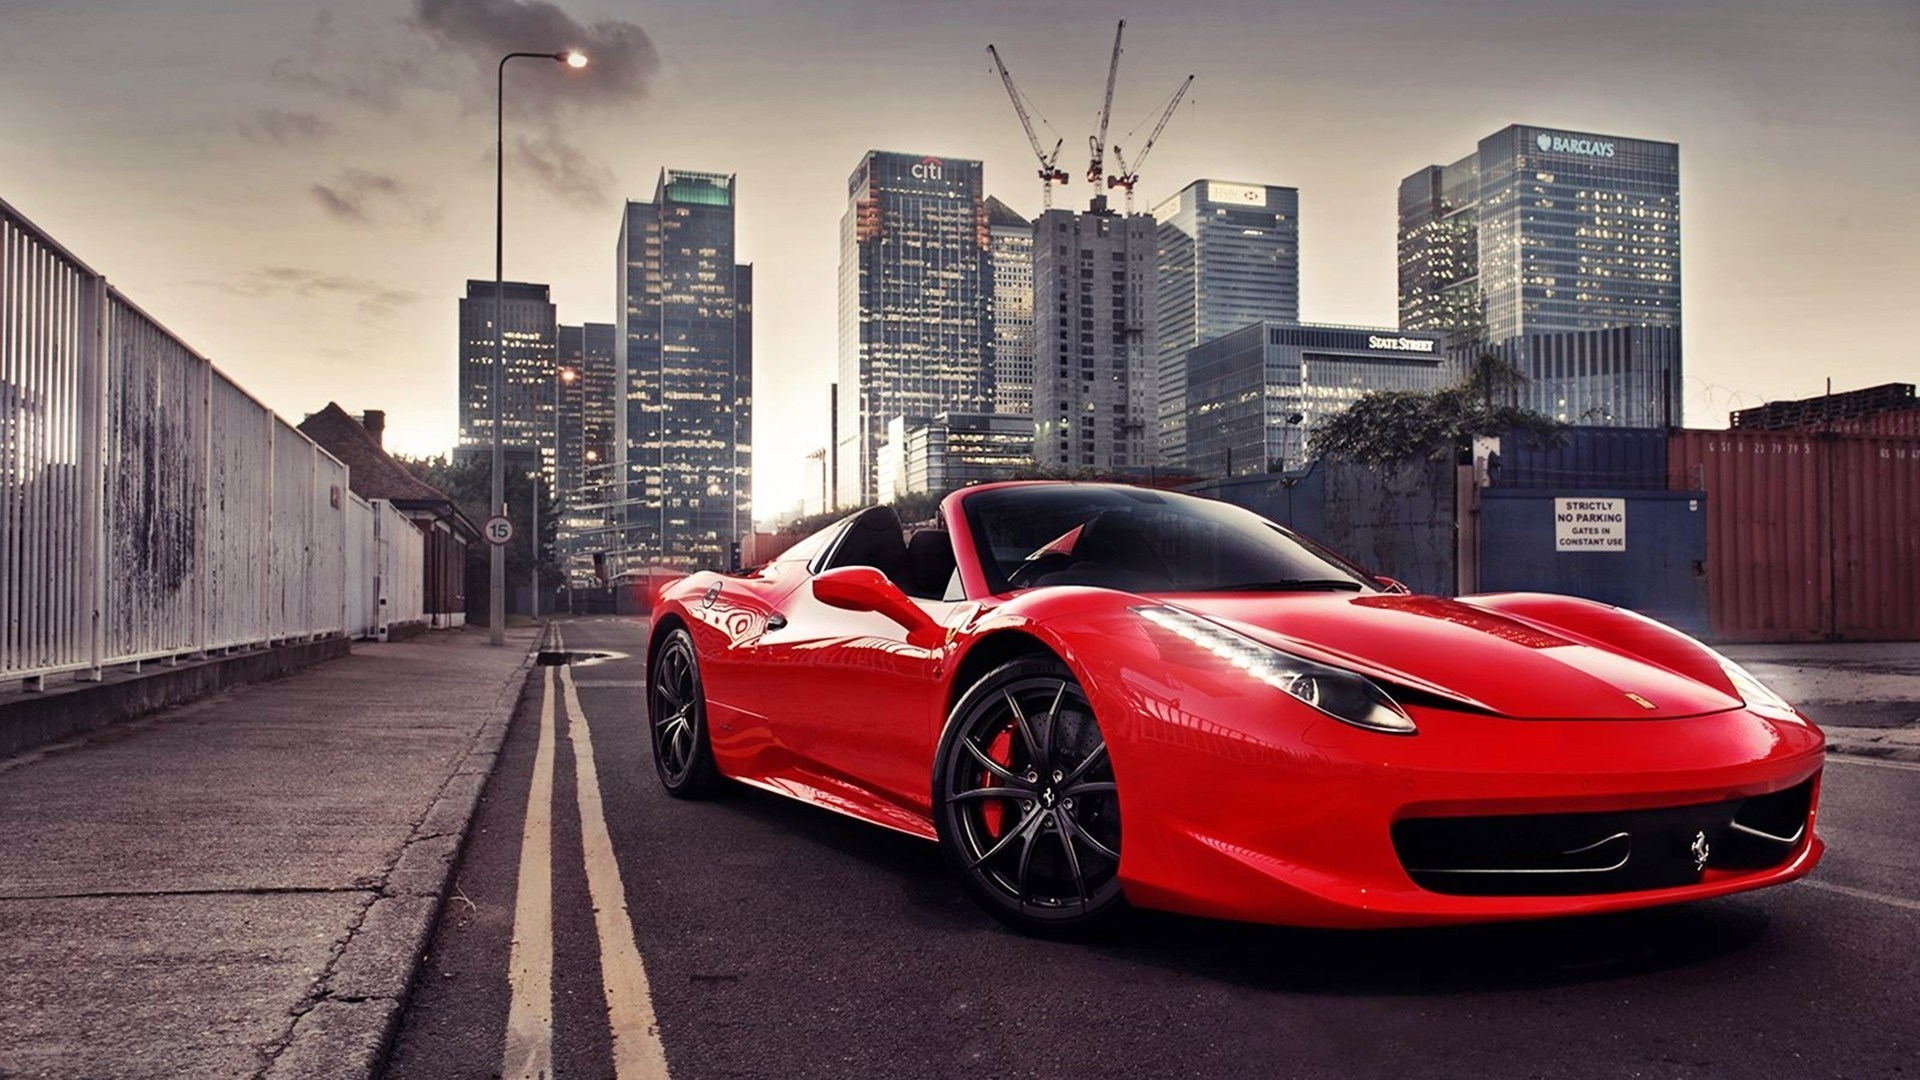 amazing ferrari 458 wallpaper 37620